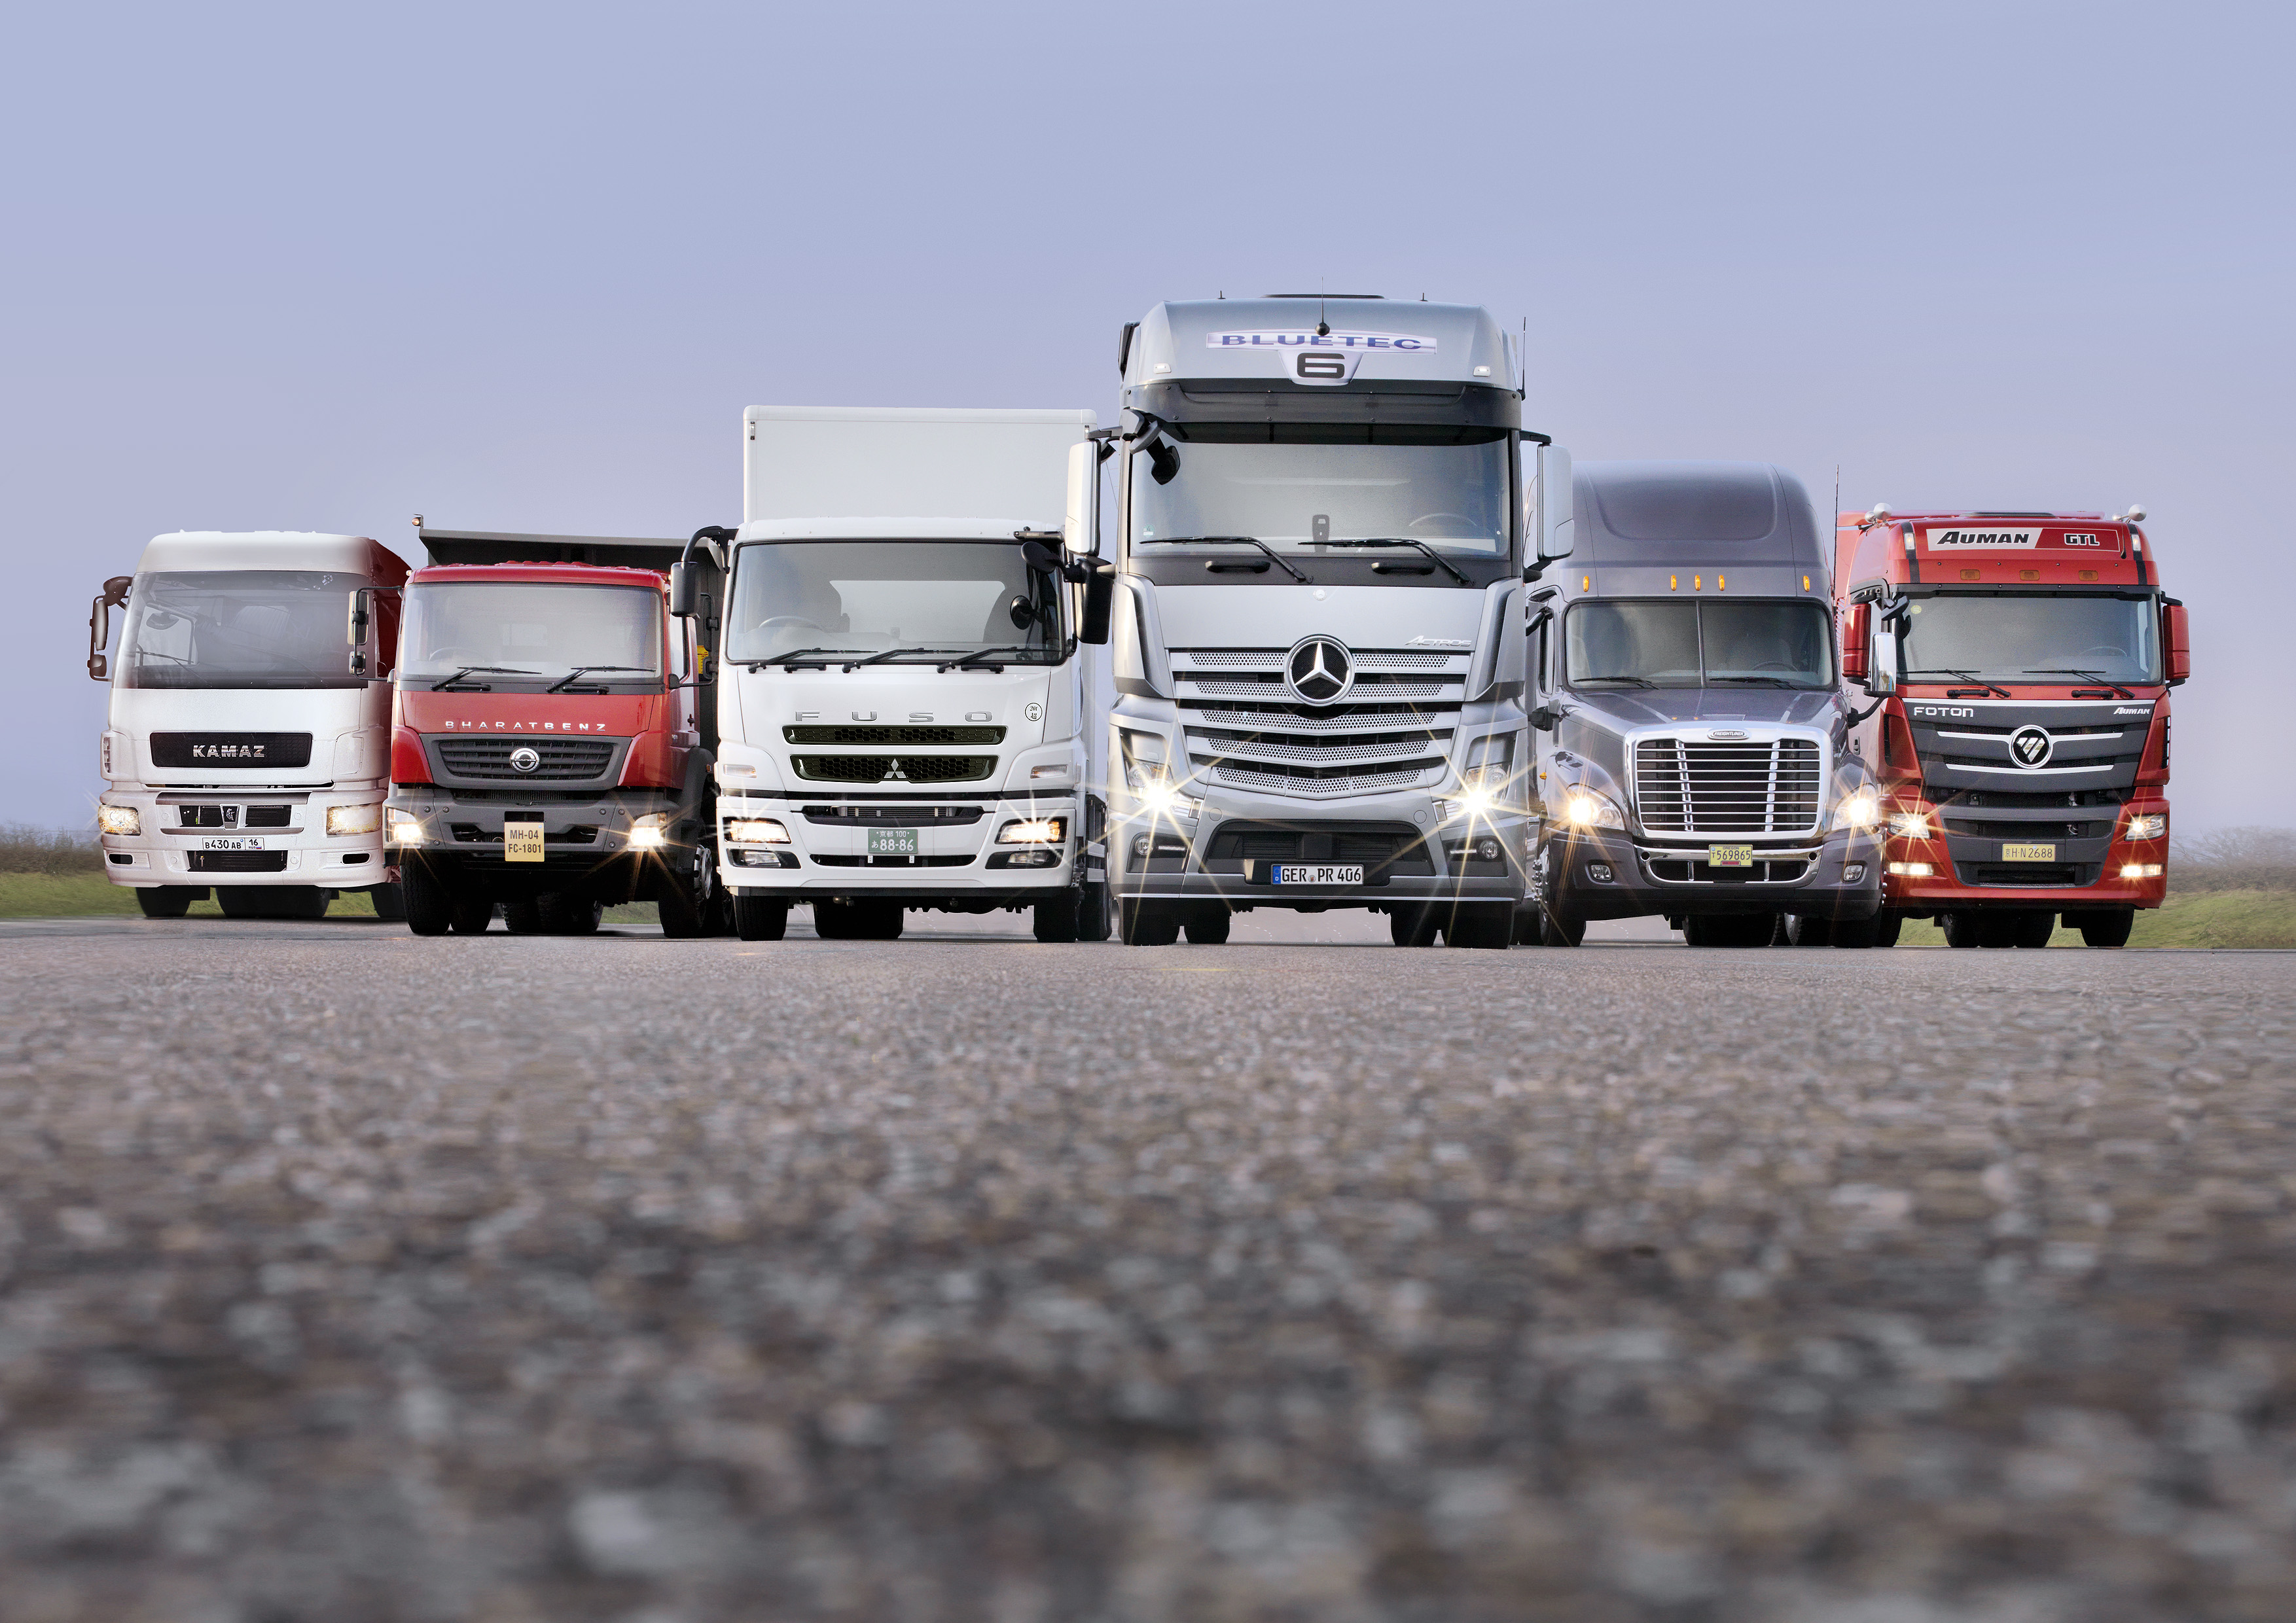 12A1421 Revenues of Daimler Trucks Increased In 2012